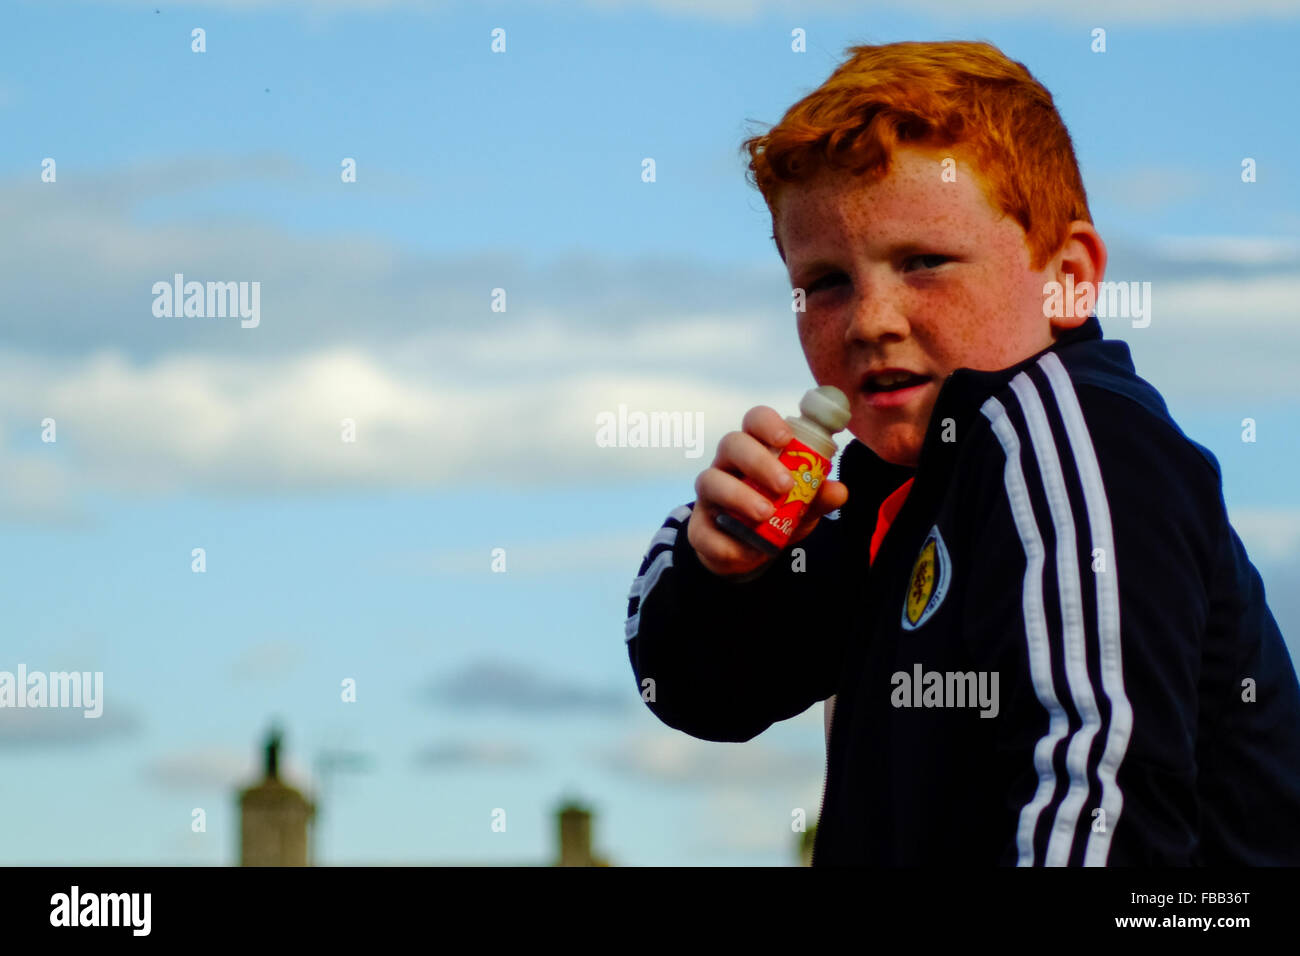 A young Scottish boy with red hair enjoys a candy on the beach in Lossiemouth, Scotland. - Stock Image